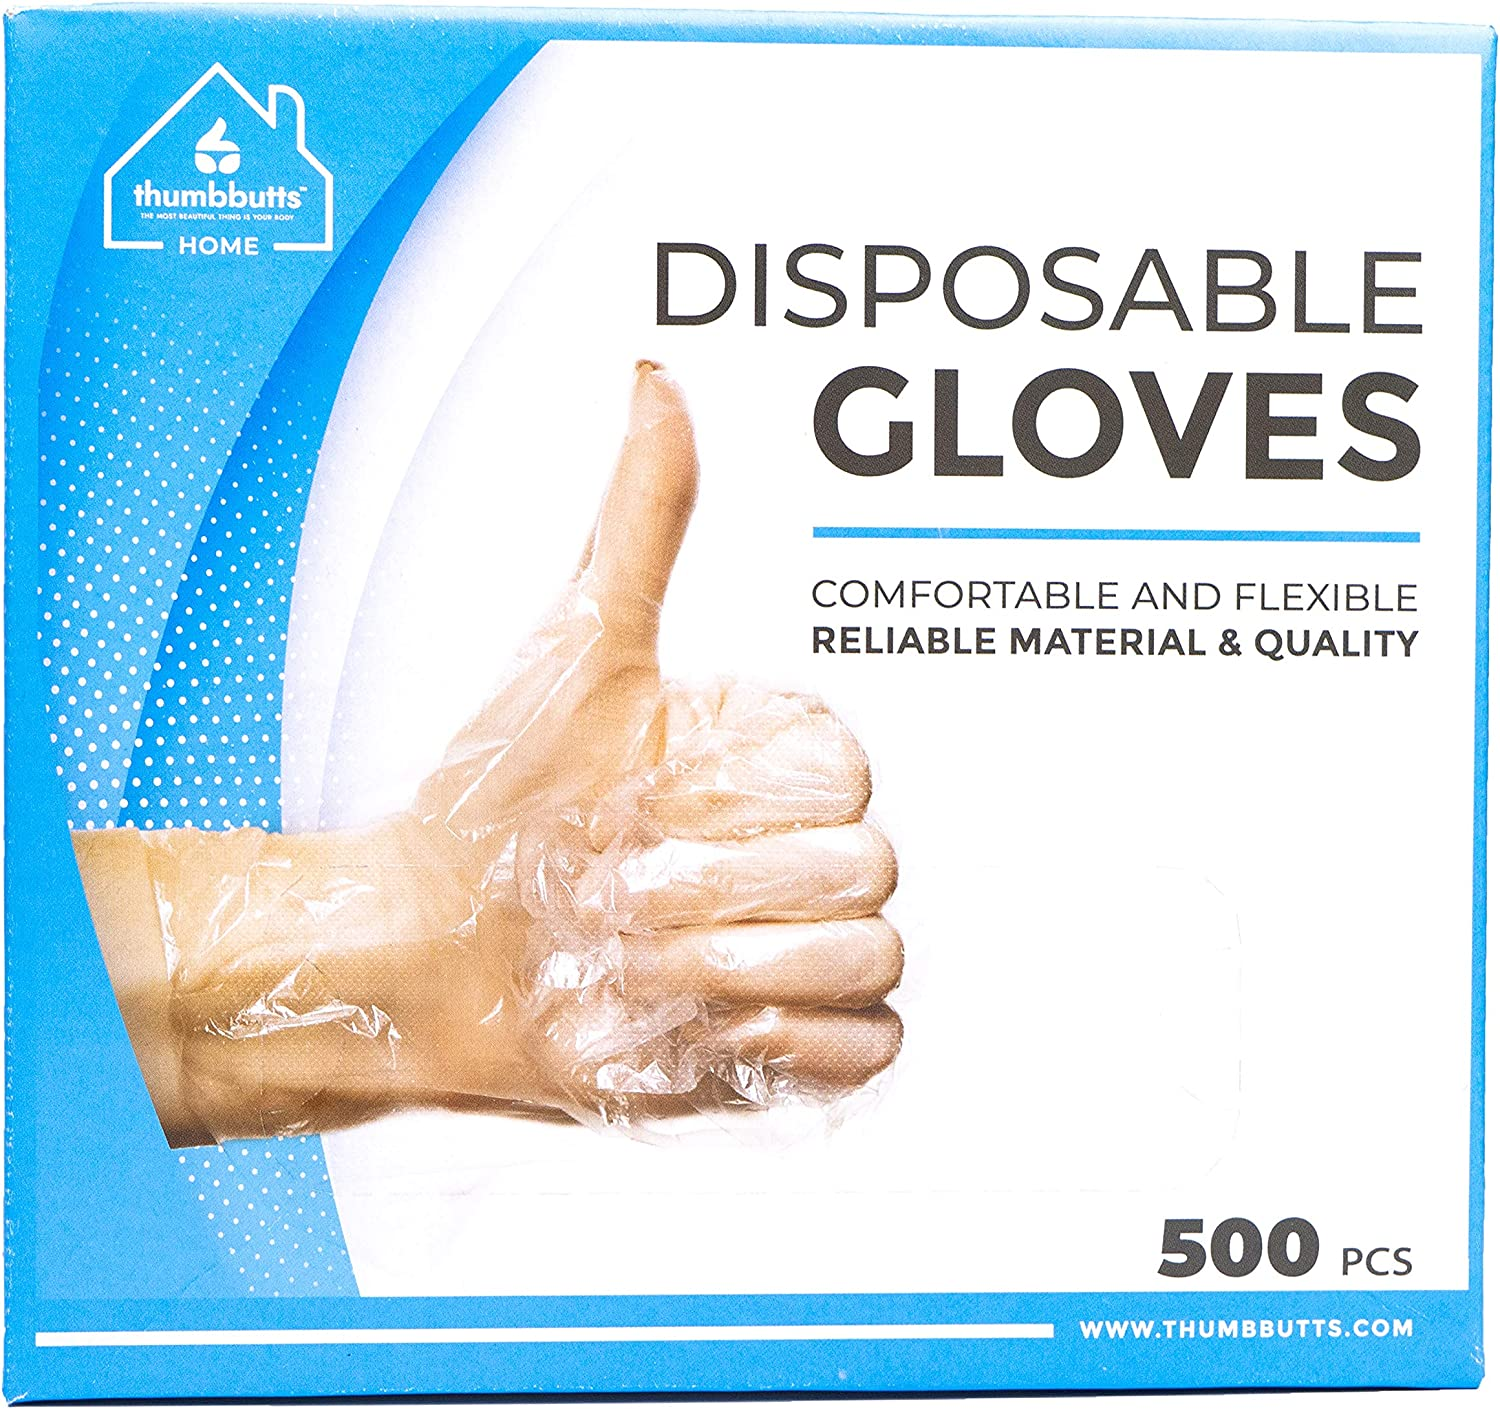 Disposable Gloves, Multipurpose Plastic Gloves Disposable, Non-Latex Food Handling Gloves, Poly Gloves for Food Service and More, Clear Gloves